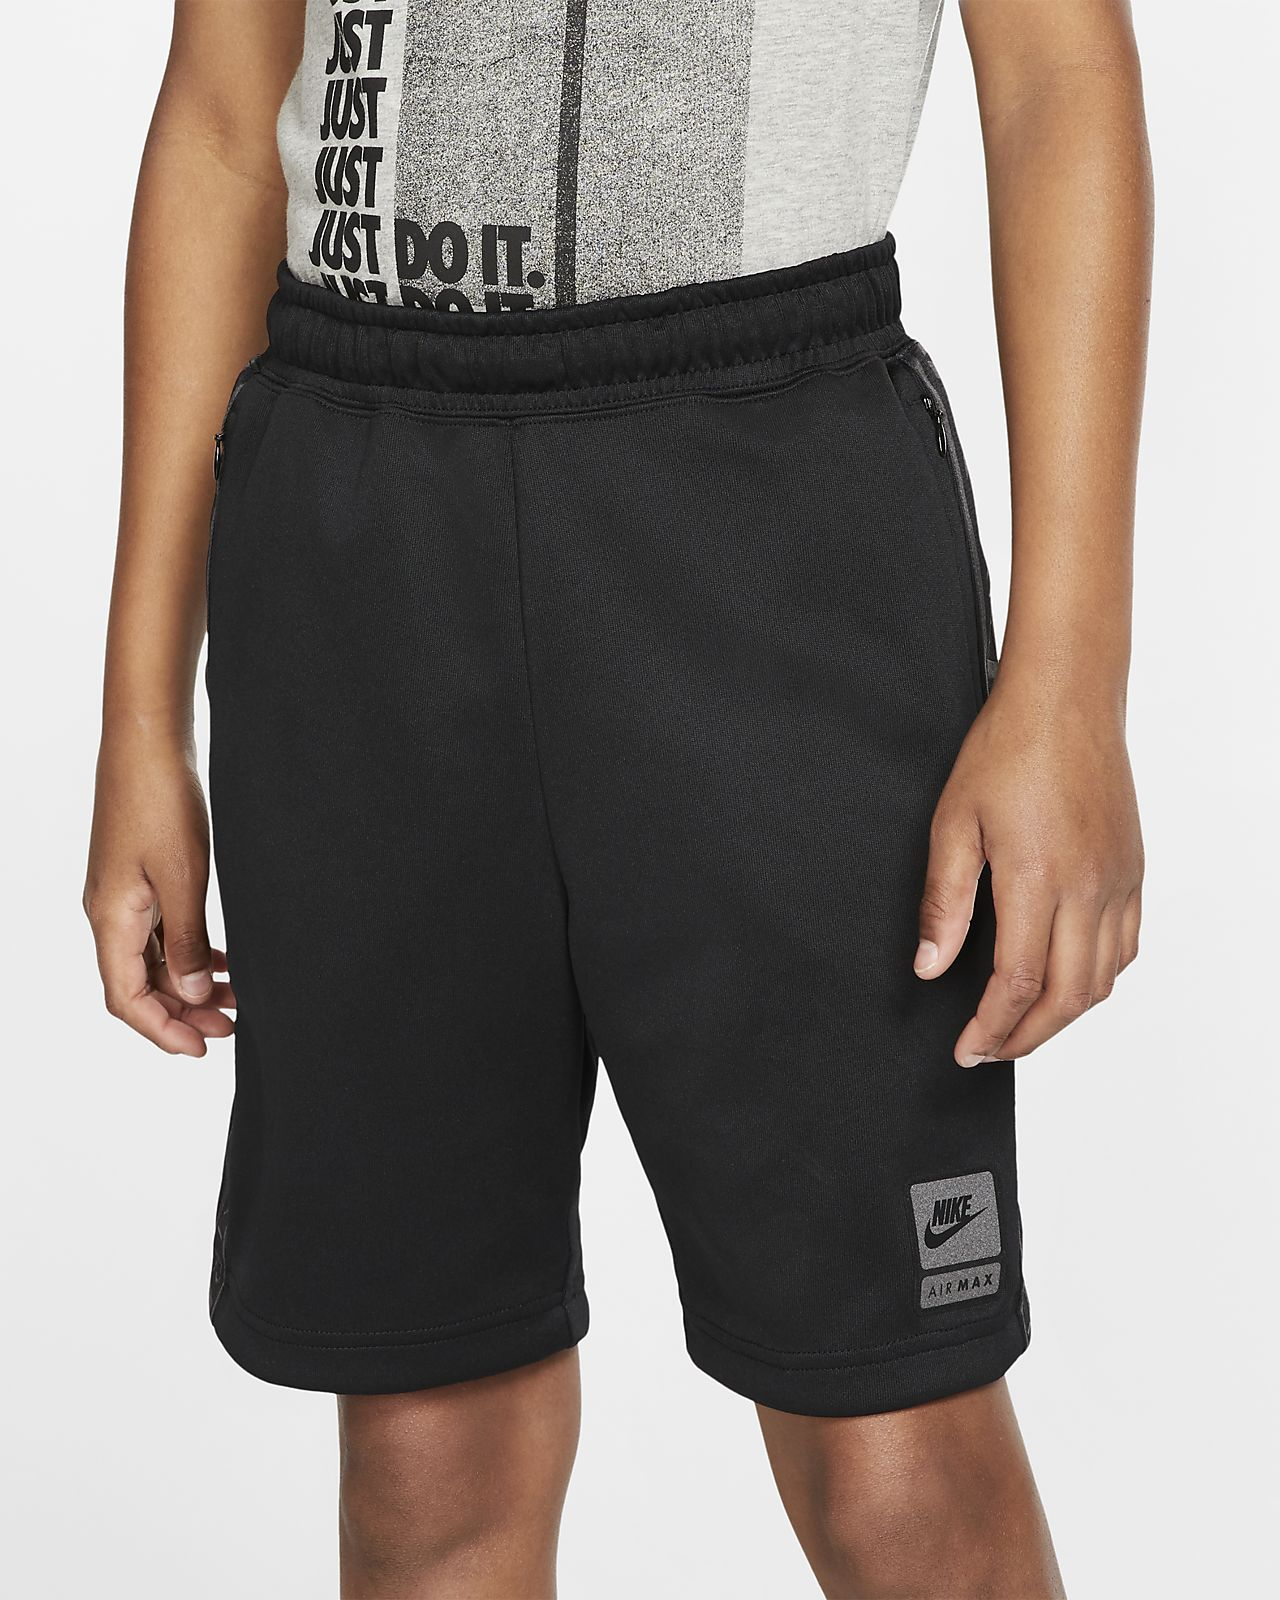 nike sportswear air max shorts f r ltere kinder jungen. Black Bedroom Furniture Sets. Home Design Ideas